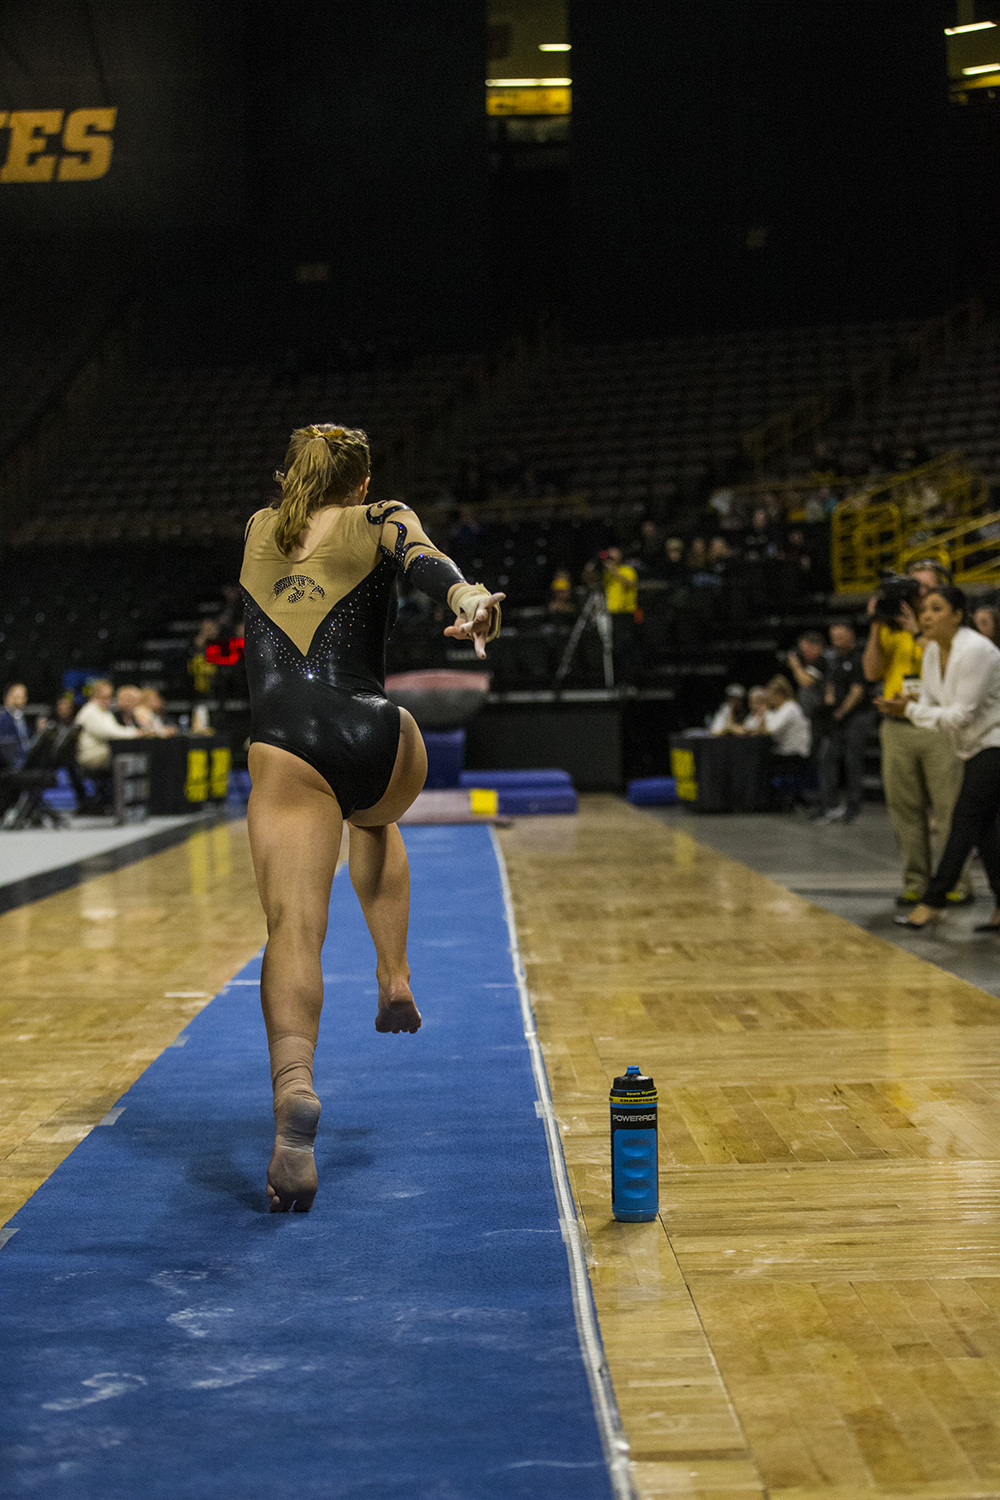 Iowa+gymnast+Lauren+Guerin+runs+towards+the+vault+during+women%27s+gymnastics+vs.+SEMO+at+Carver-Hawkeye+Arena+on+Friday%2C+January+11%2C+2019.+The+GymHawks+defeated+the+Redhawks+